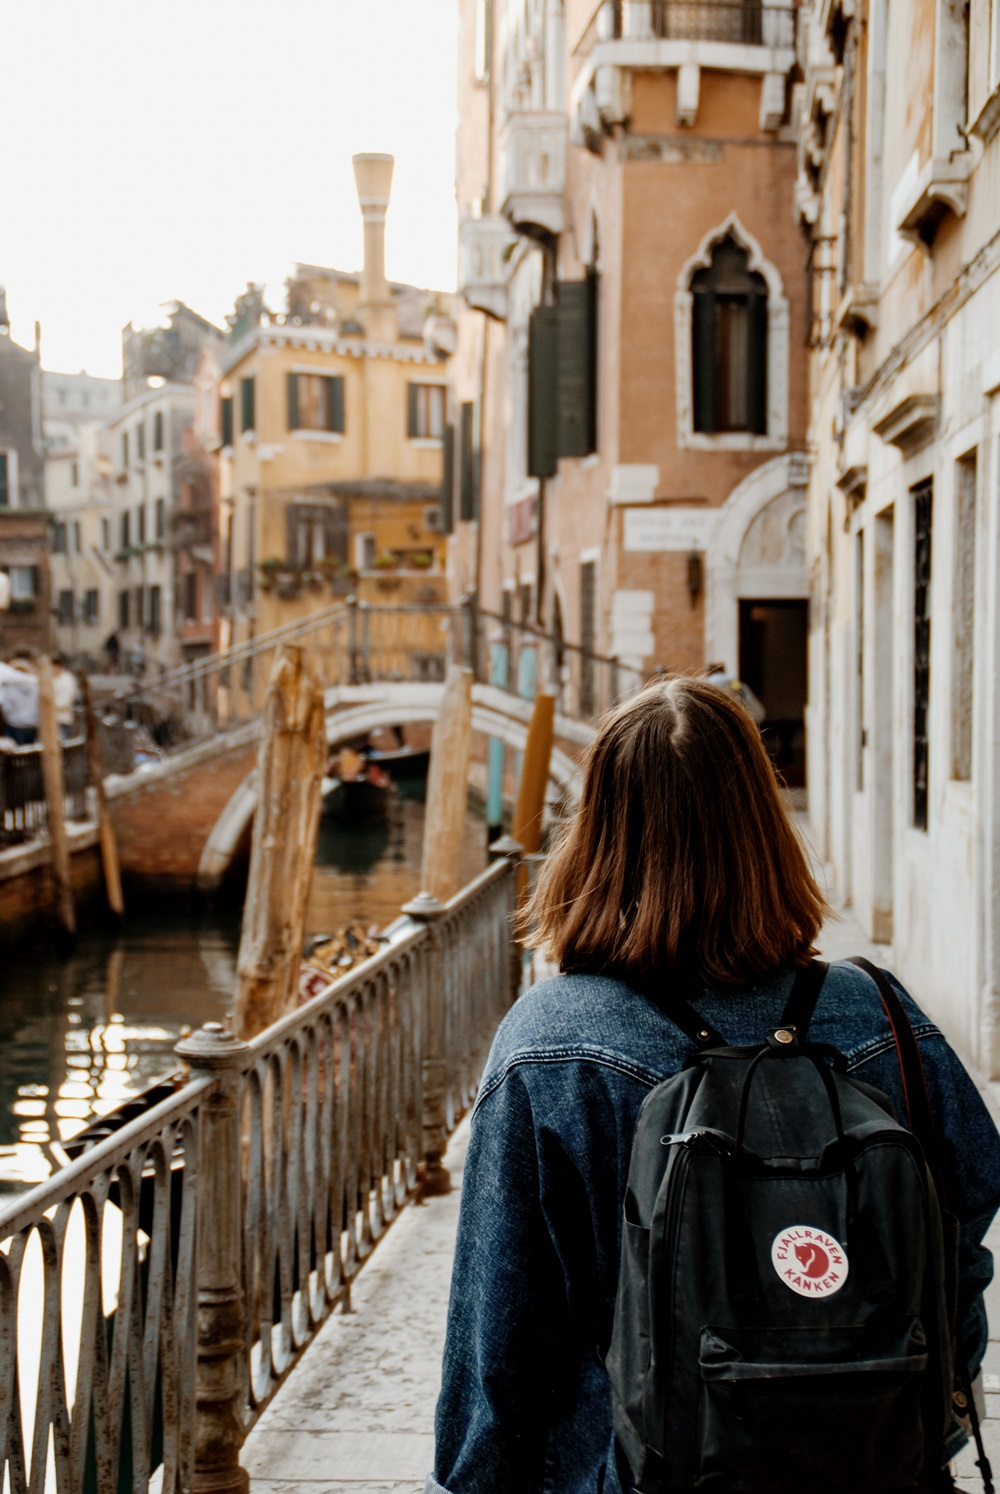 One day in Venice - A Photo Love Story